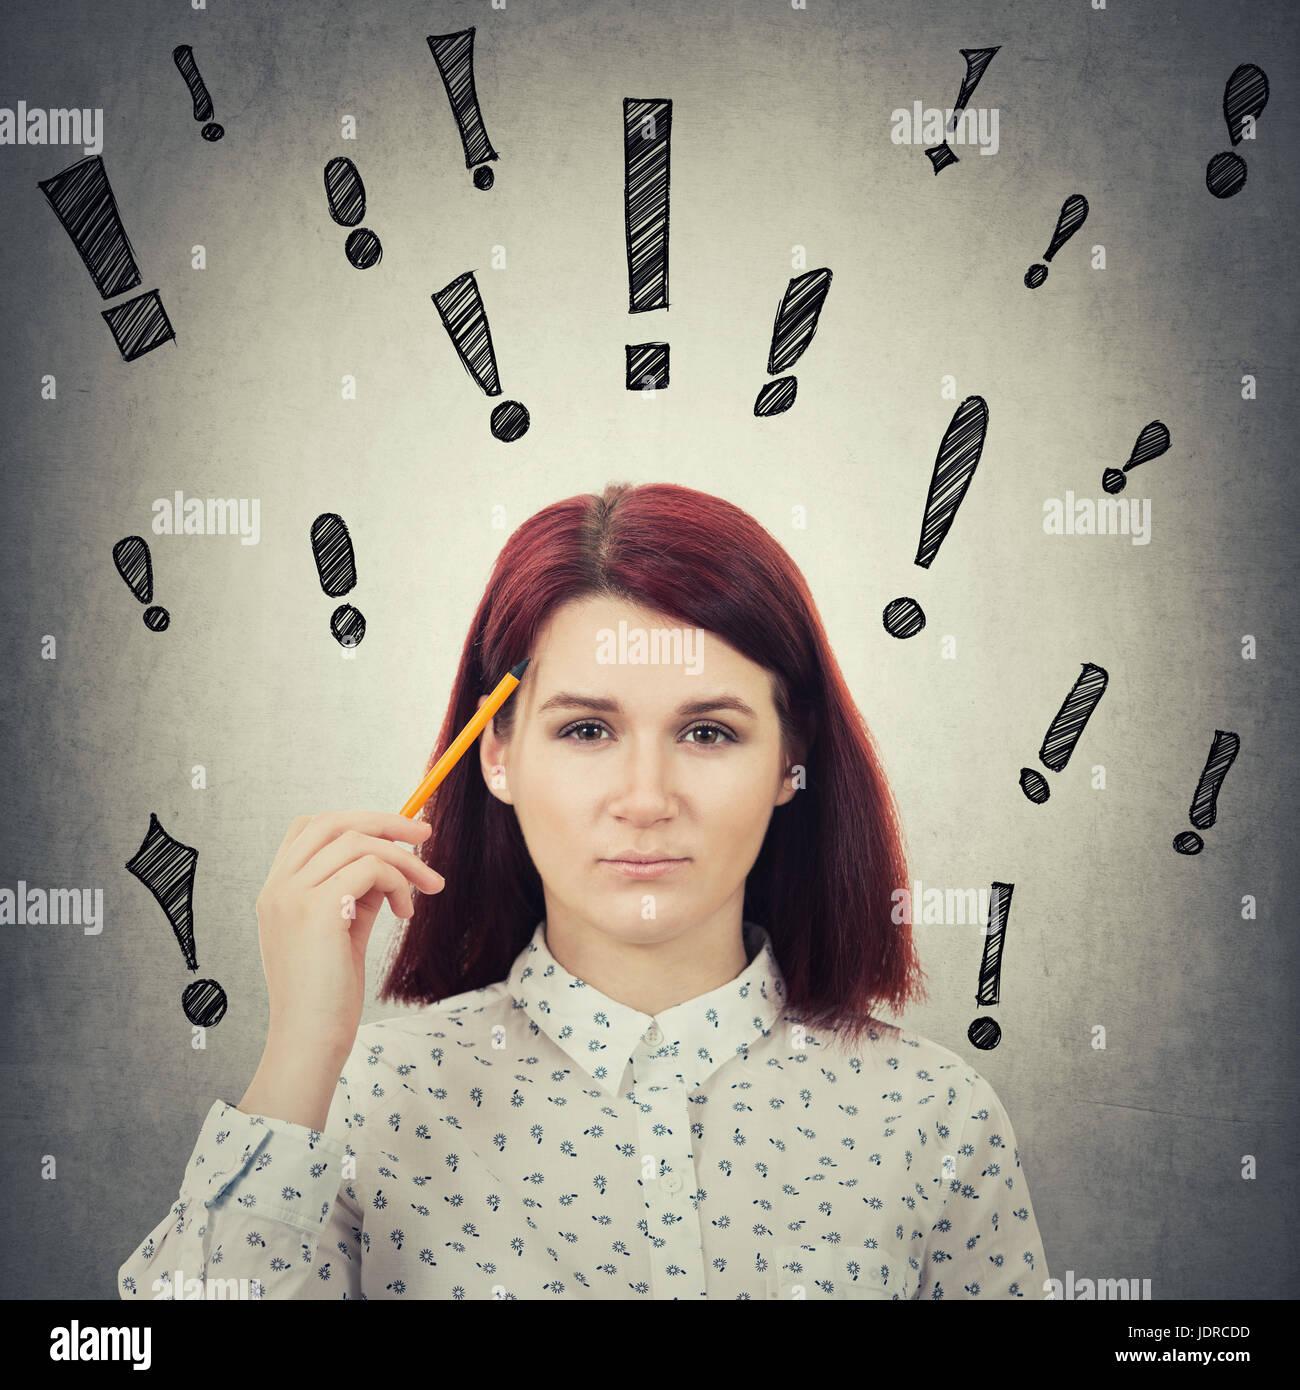 Serious businesswoman holding a pencil pointed to face, drawing different exclamation marks like different thoughts - Stock Image